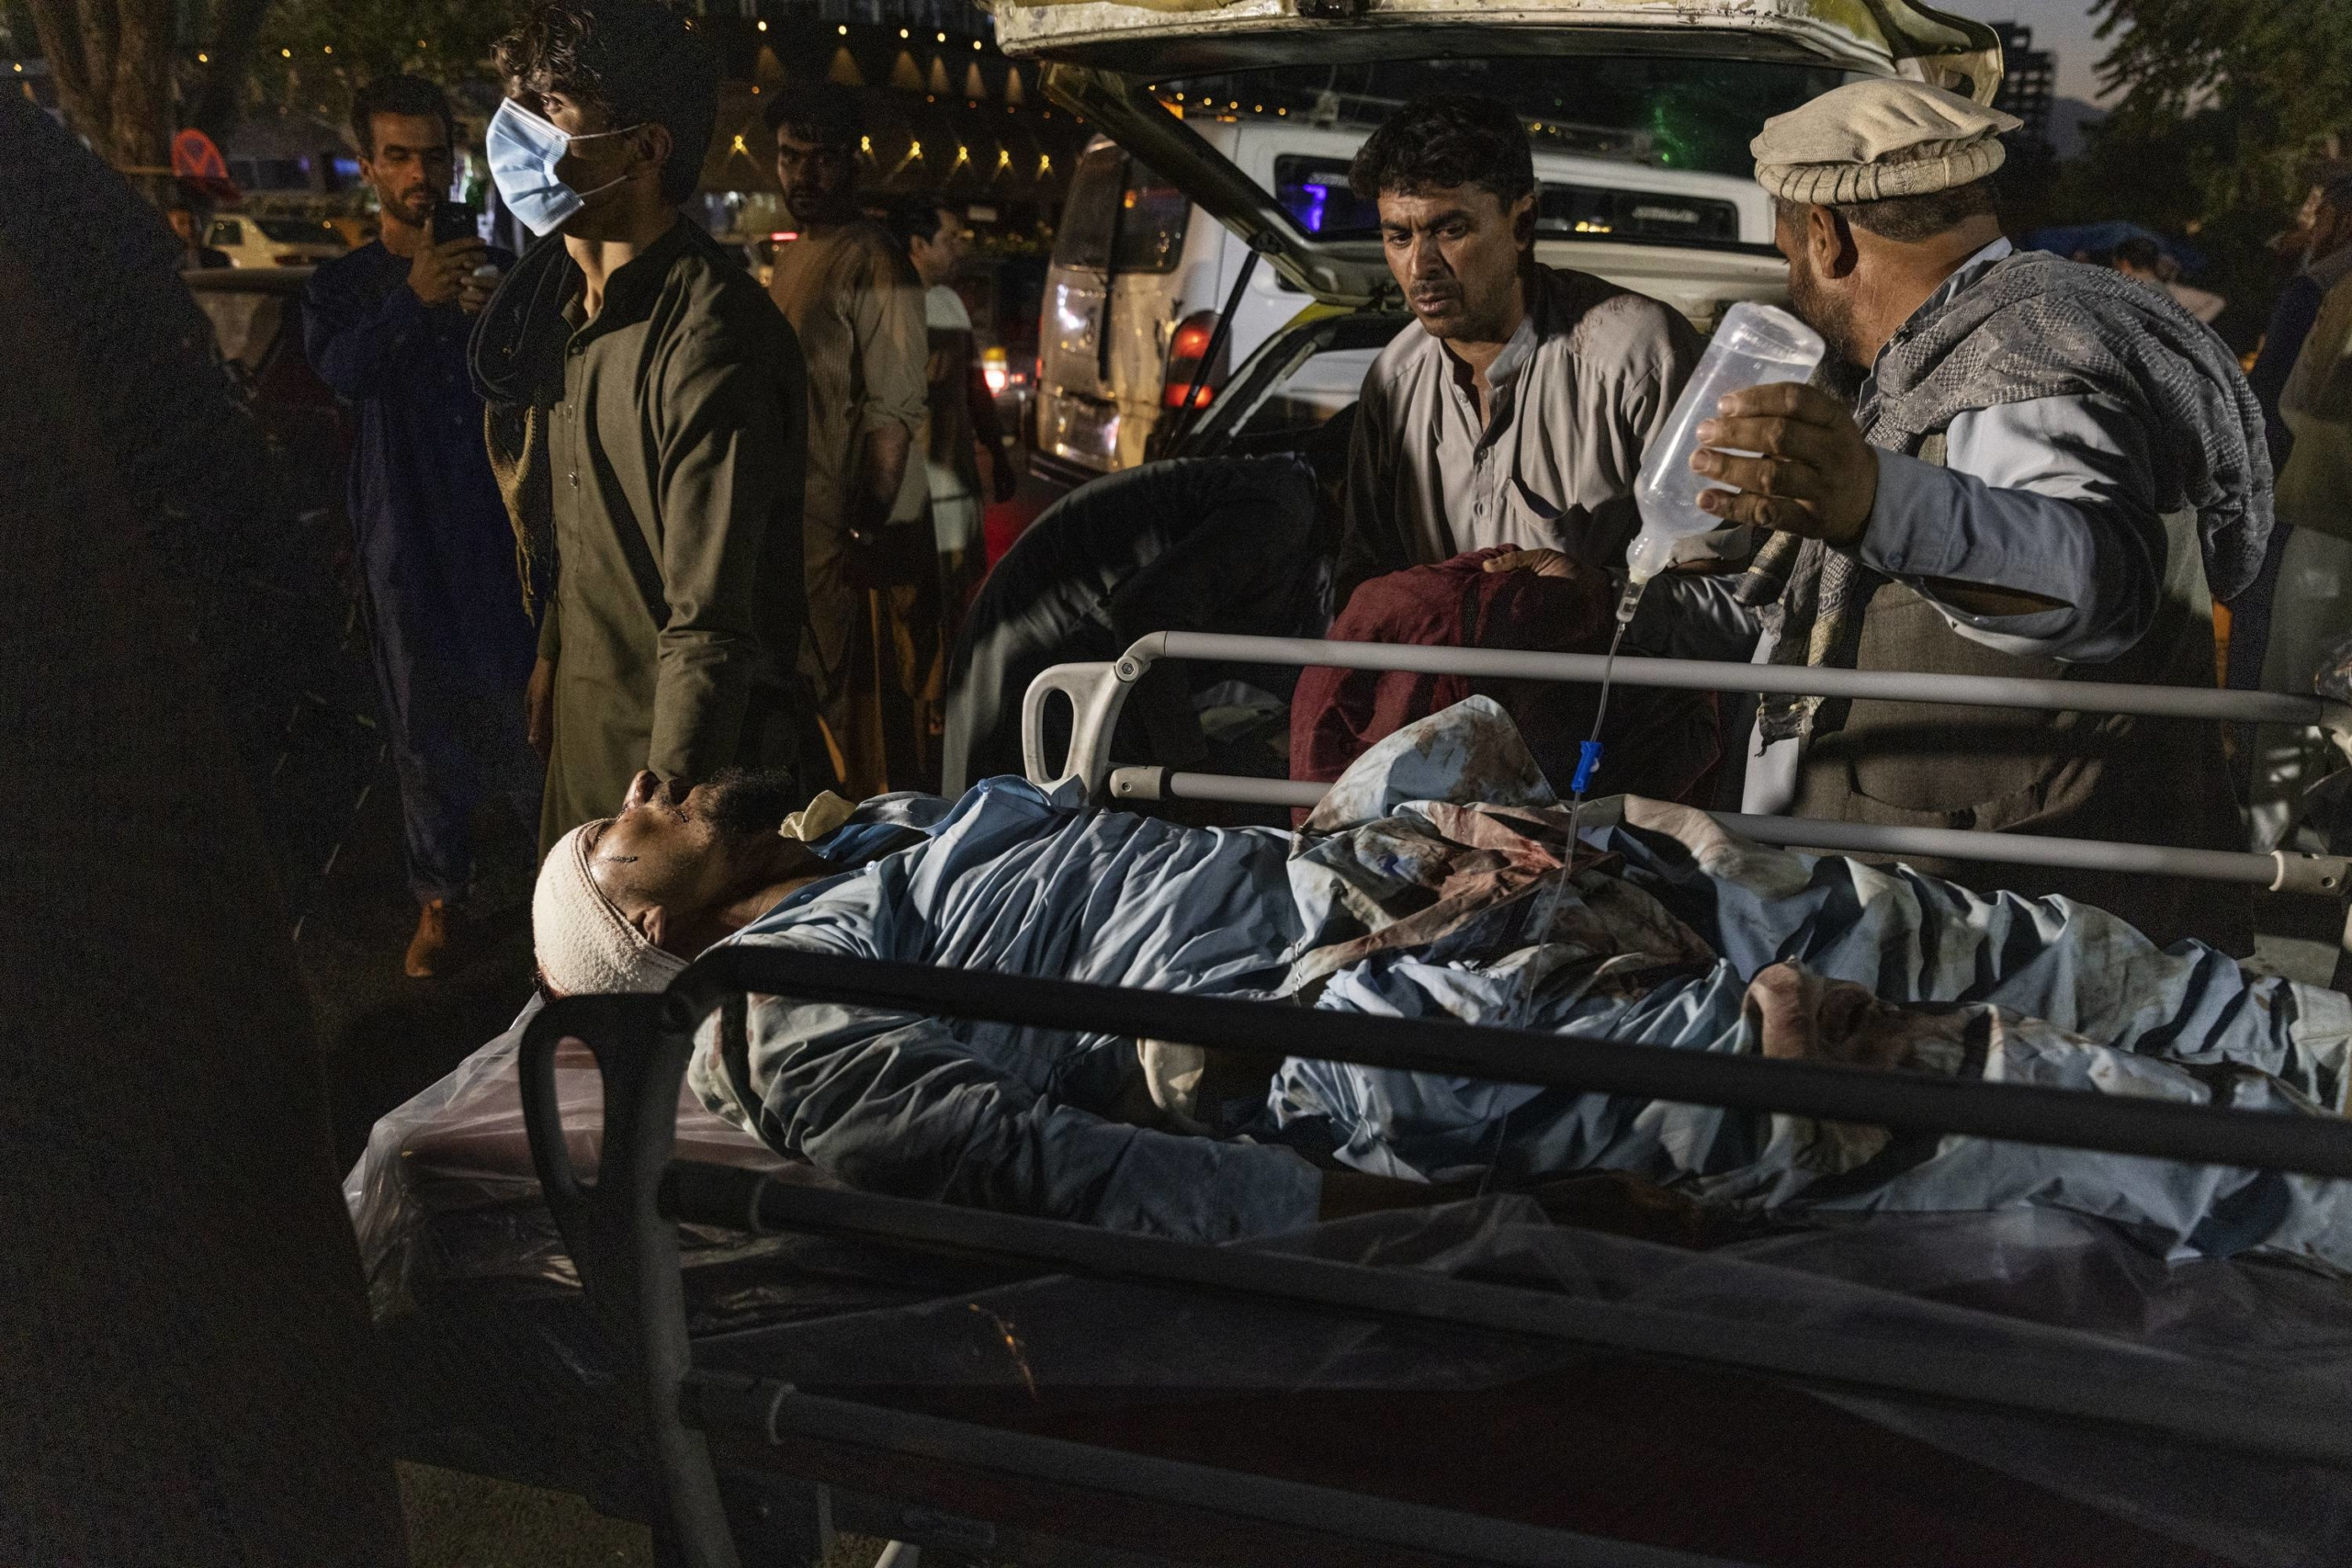 A person wounded in a bomb blast outside the international airport in Kabul arrives at a hospital on Thursday.  | VICTOR J. BLUE / THE NEW YORK TIMES